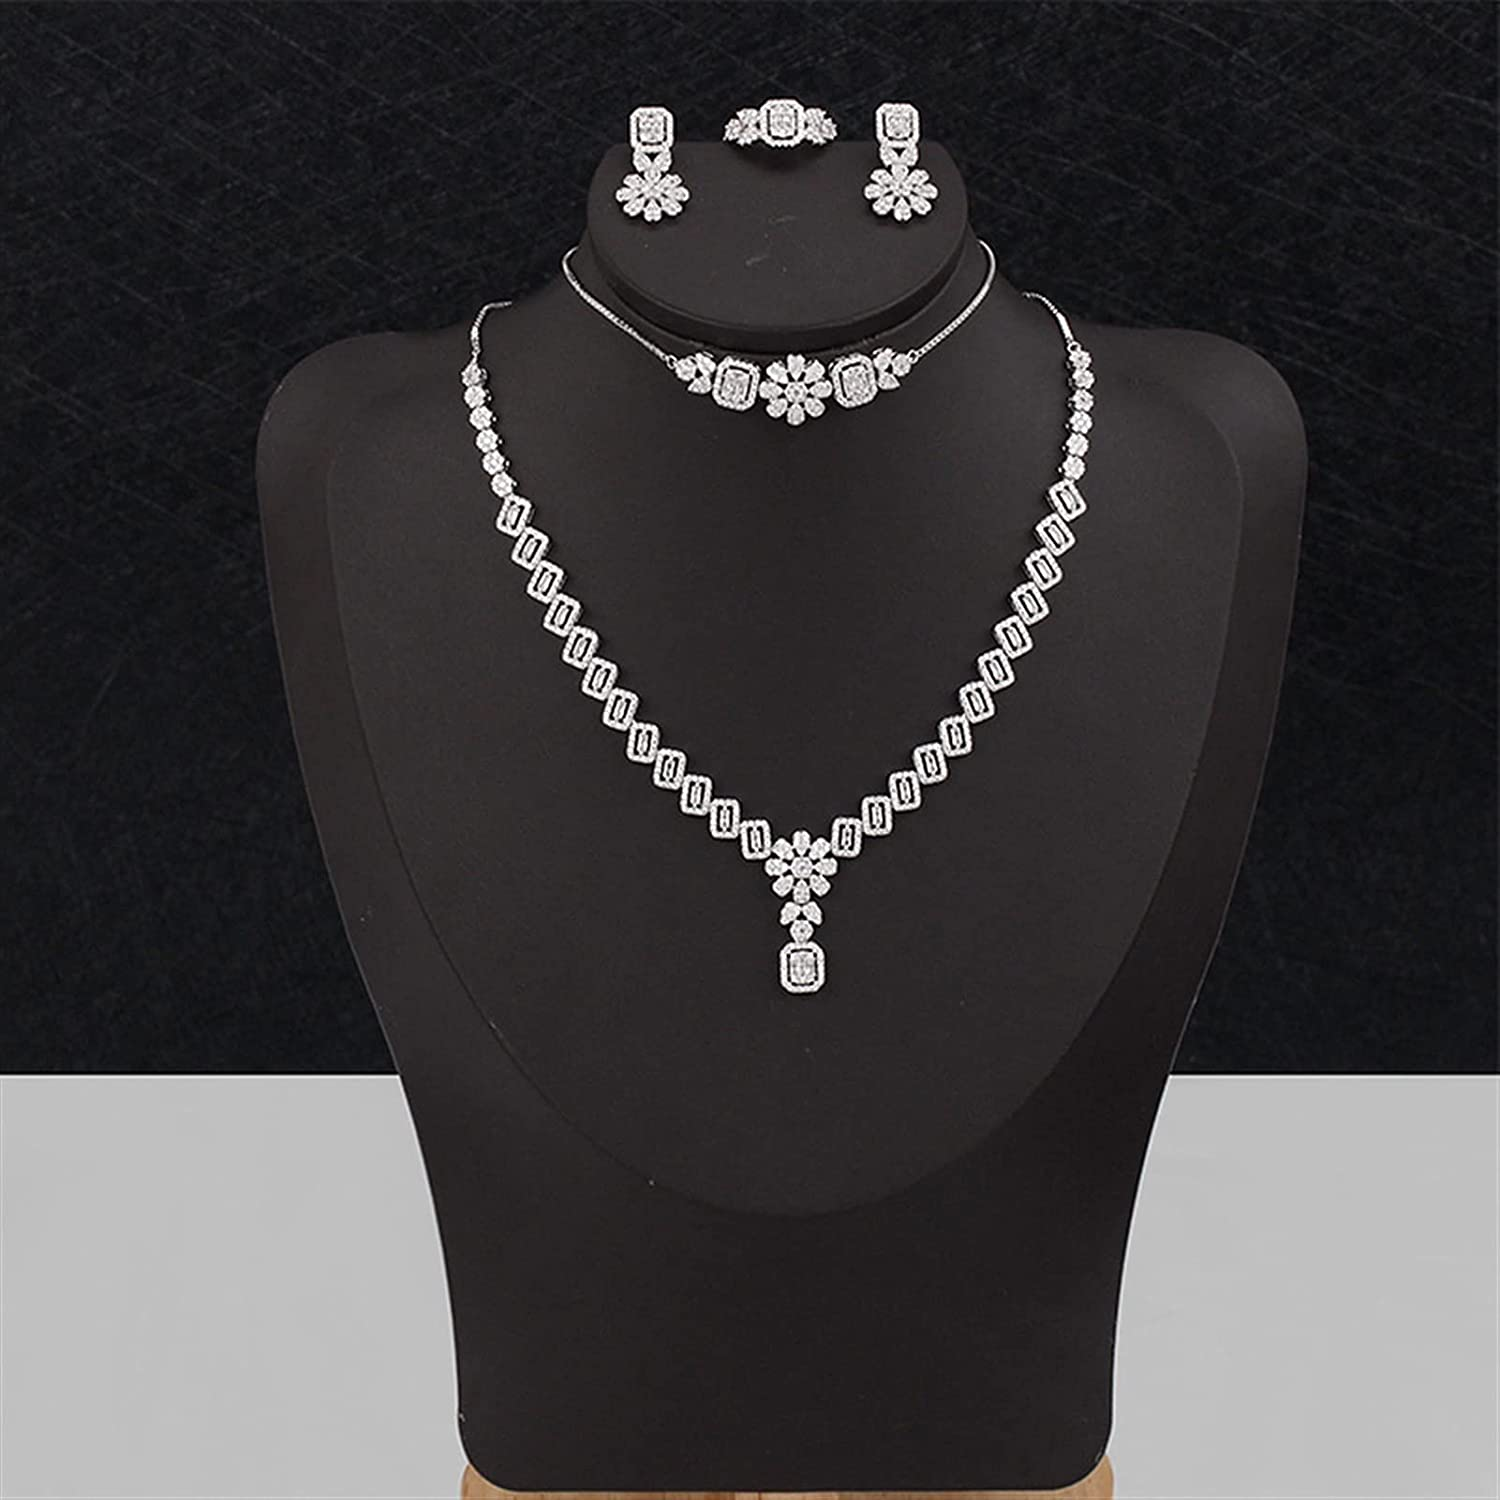 SYXMSM Jewellery Set Bridal Popular products Jewelry Engagement for Sale Special Price Wedding C